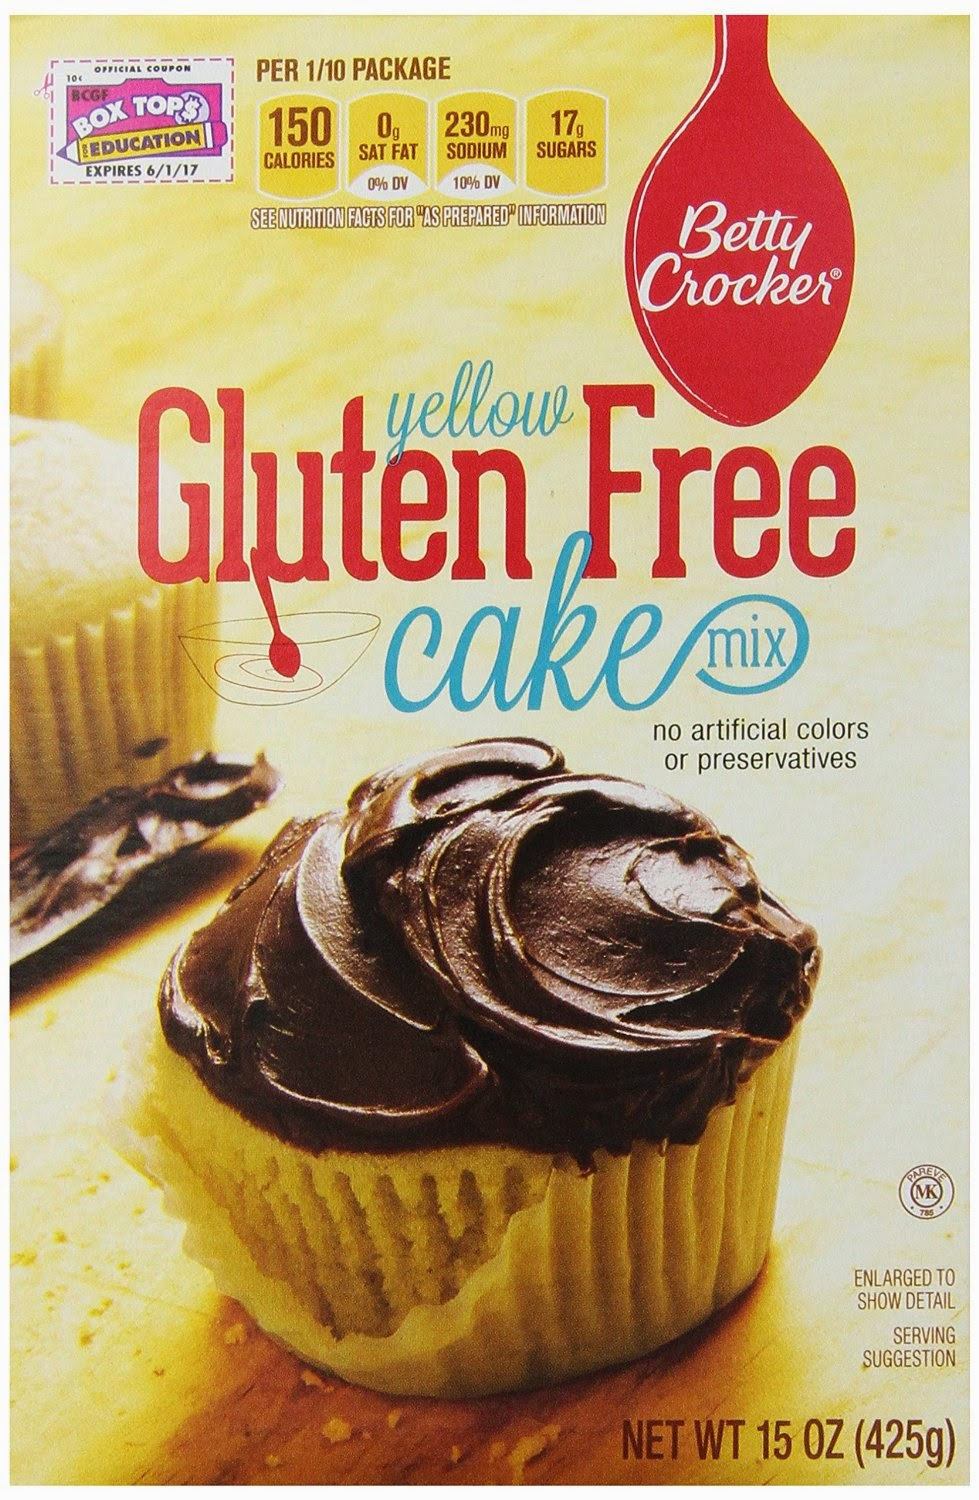 "http://www.amazon.com/Betty-Crocker-GLUTEN-FREE-Yellow/dp/B002T628US/?_encoding=UTF8&camp=1789&creative=9325&keywords=gluten%20free%20cake%20mix%20betty%20crocker&linkCode=ur2&qid=1427979812&sr=8-3&tag=awiwobuheho-20&linkId=UMPGCWTKSYAYZ46U""></a><img src=""http://ir-na.amazon-adsystem.com/e/ir?t=awiwobuheho-20&l=ur2&o=1"" width=""1"" height=""1"" border=""0"" alt="""" style=""border:none !important; margin:0px !important;"" /"